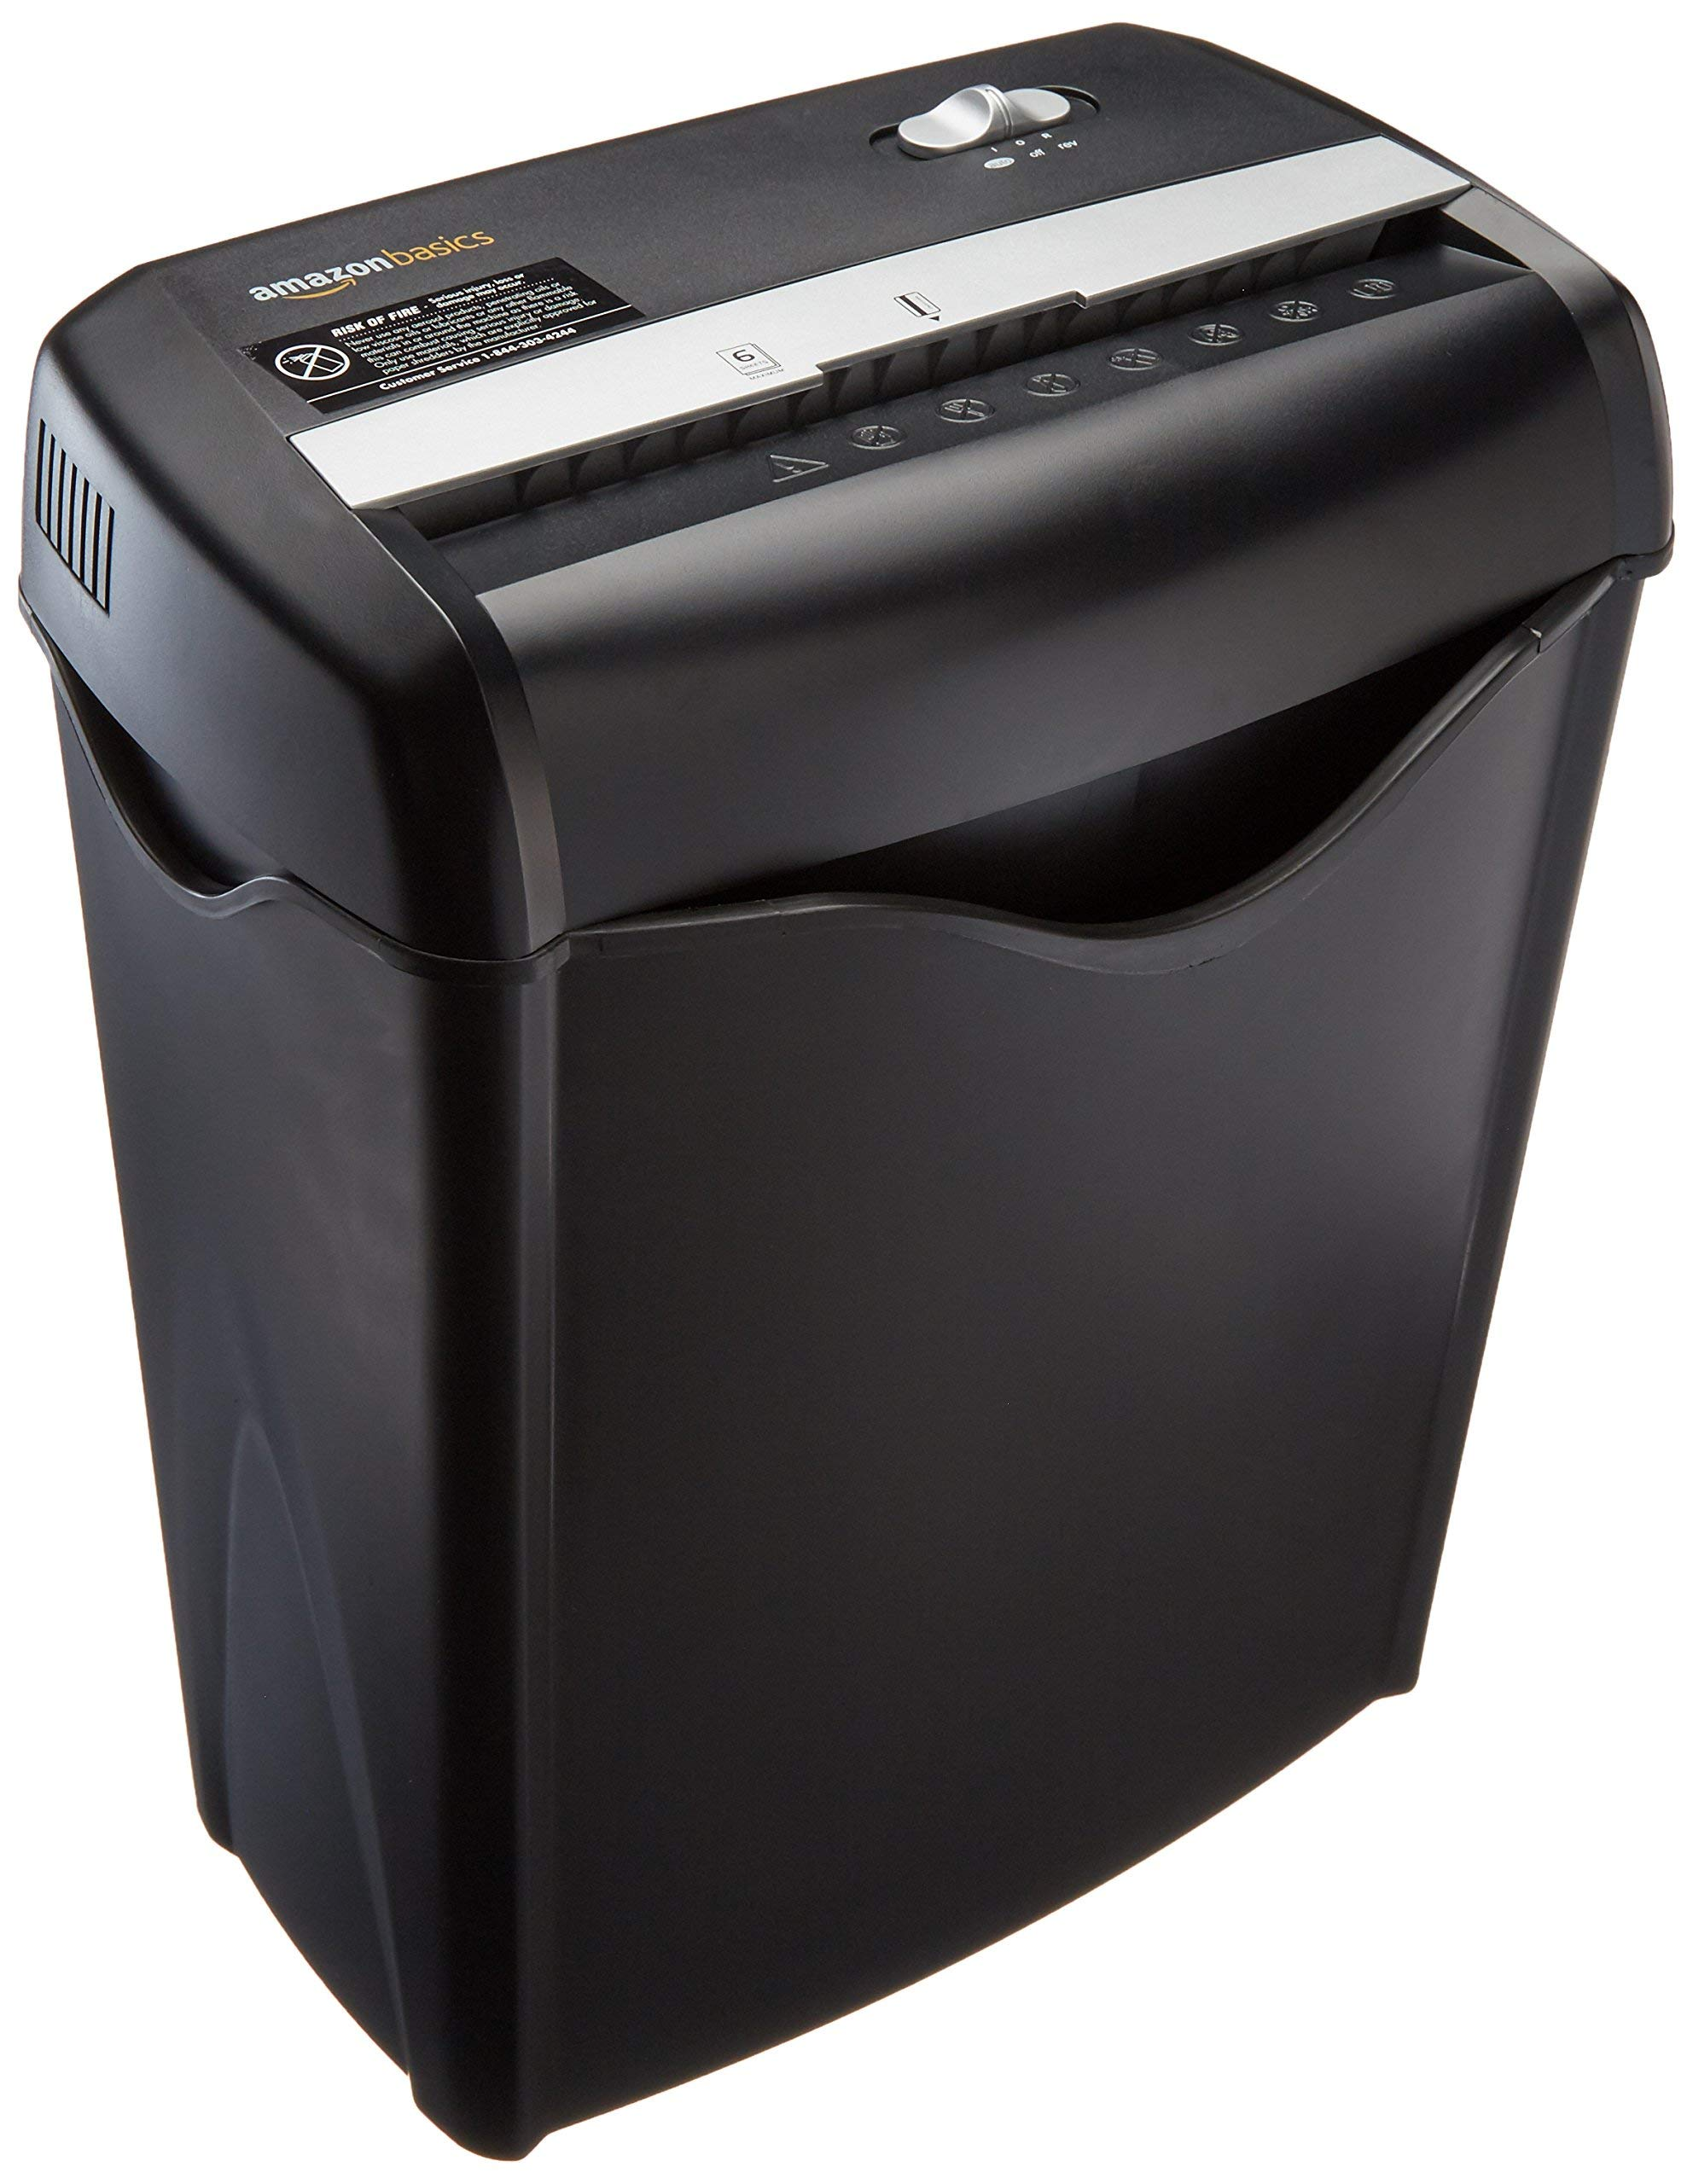 AmazonBasics 6-Sheet Cross-Cut Paper and Credit Card Shredder (Renewed)